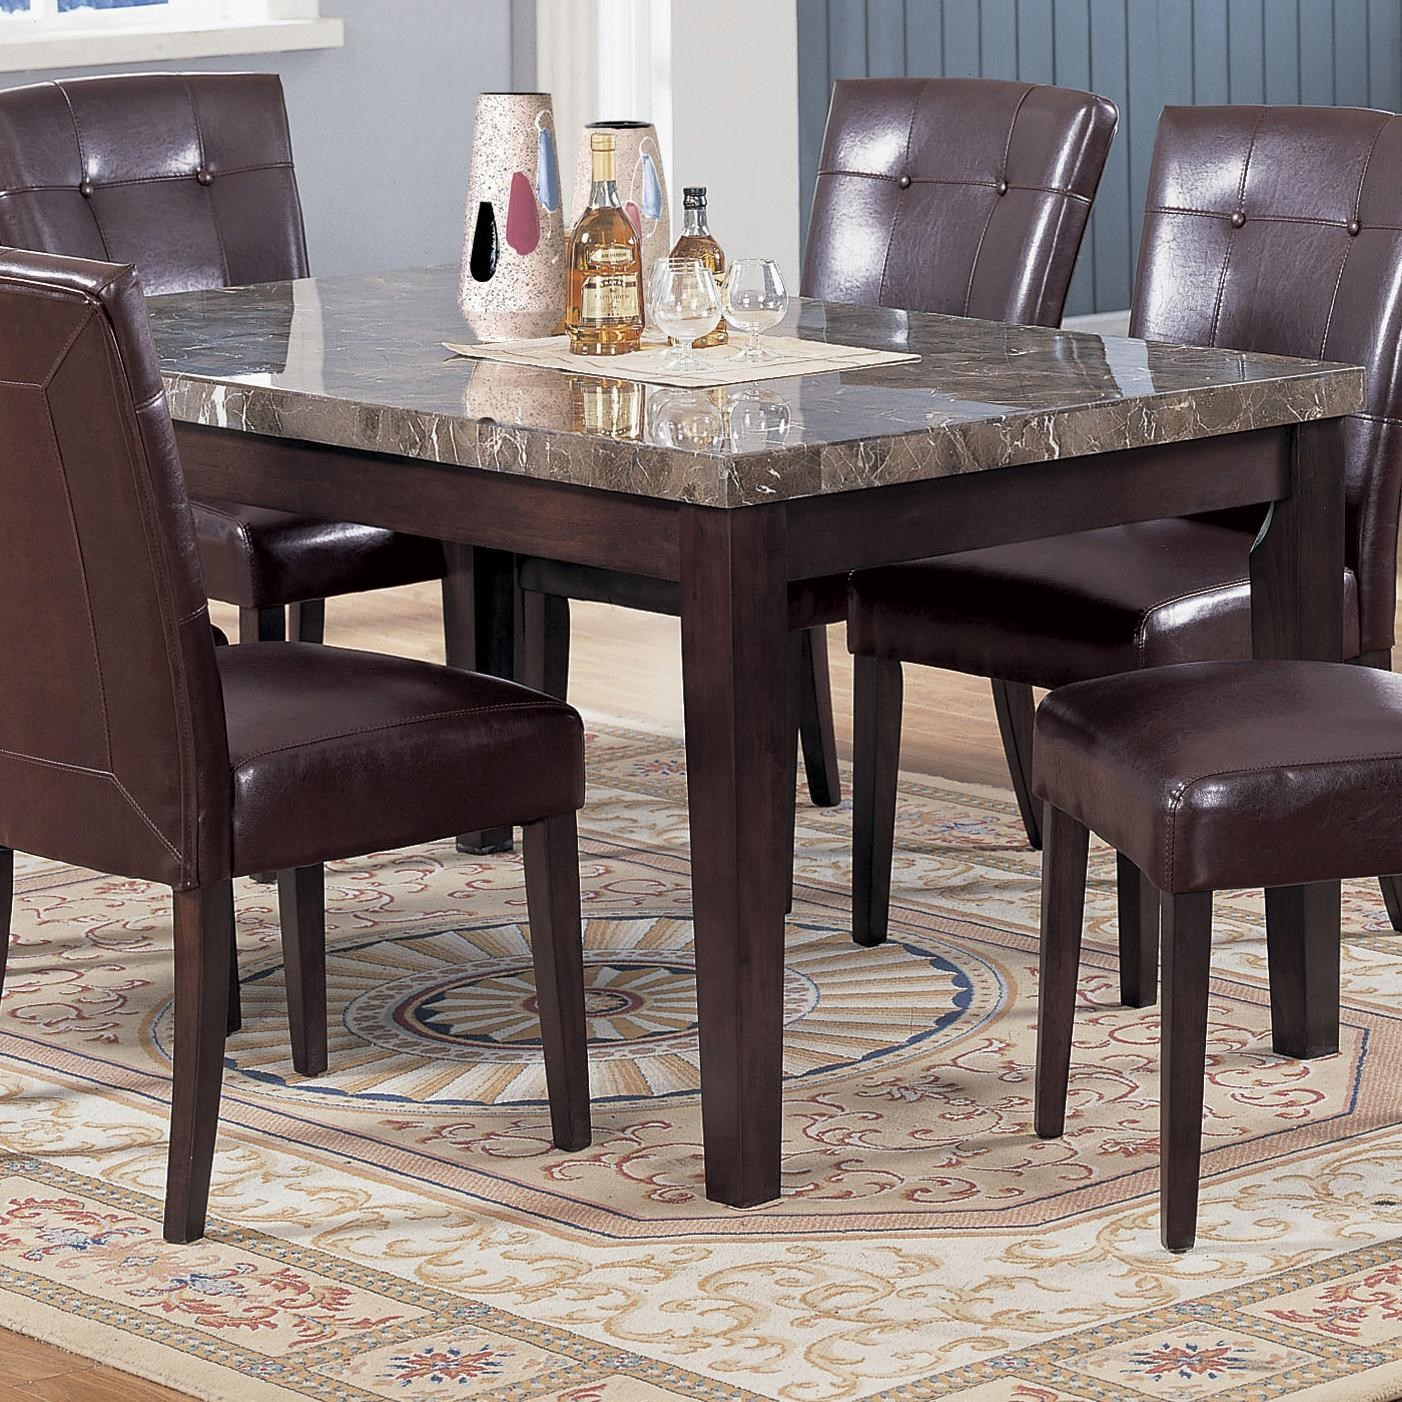 Acme Furniture 7058 Rectangular Dining Table with Black